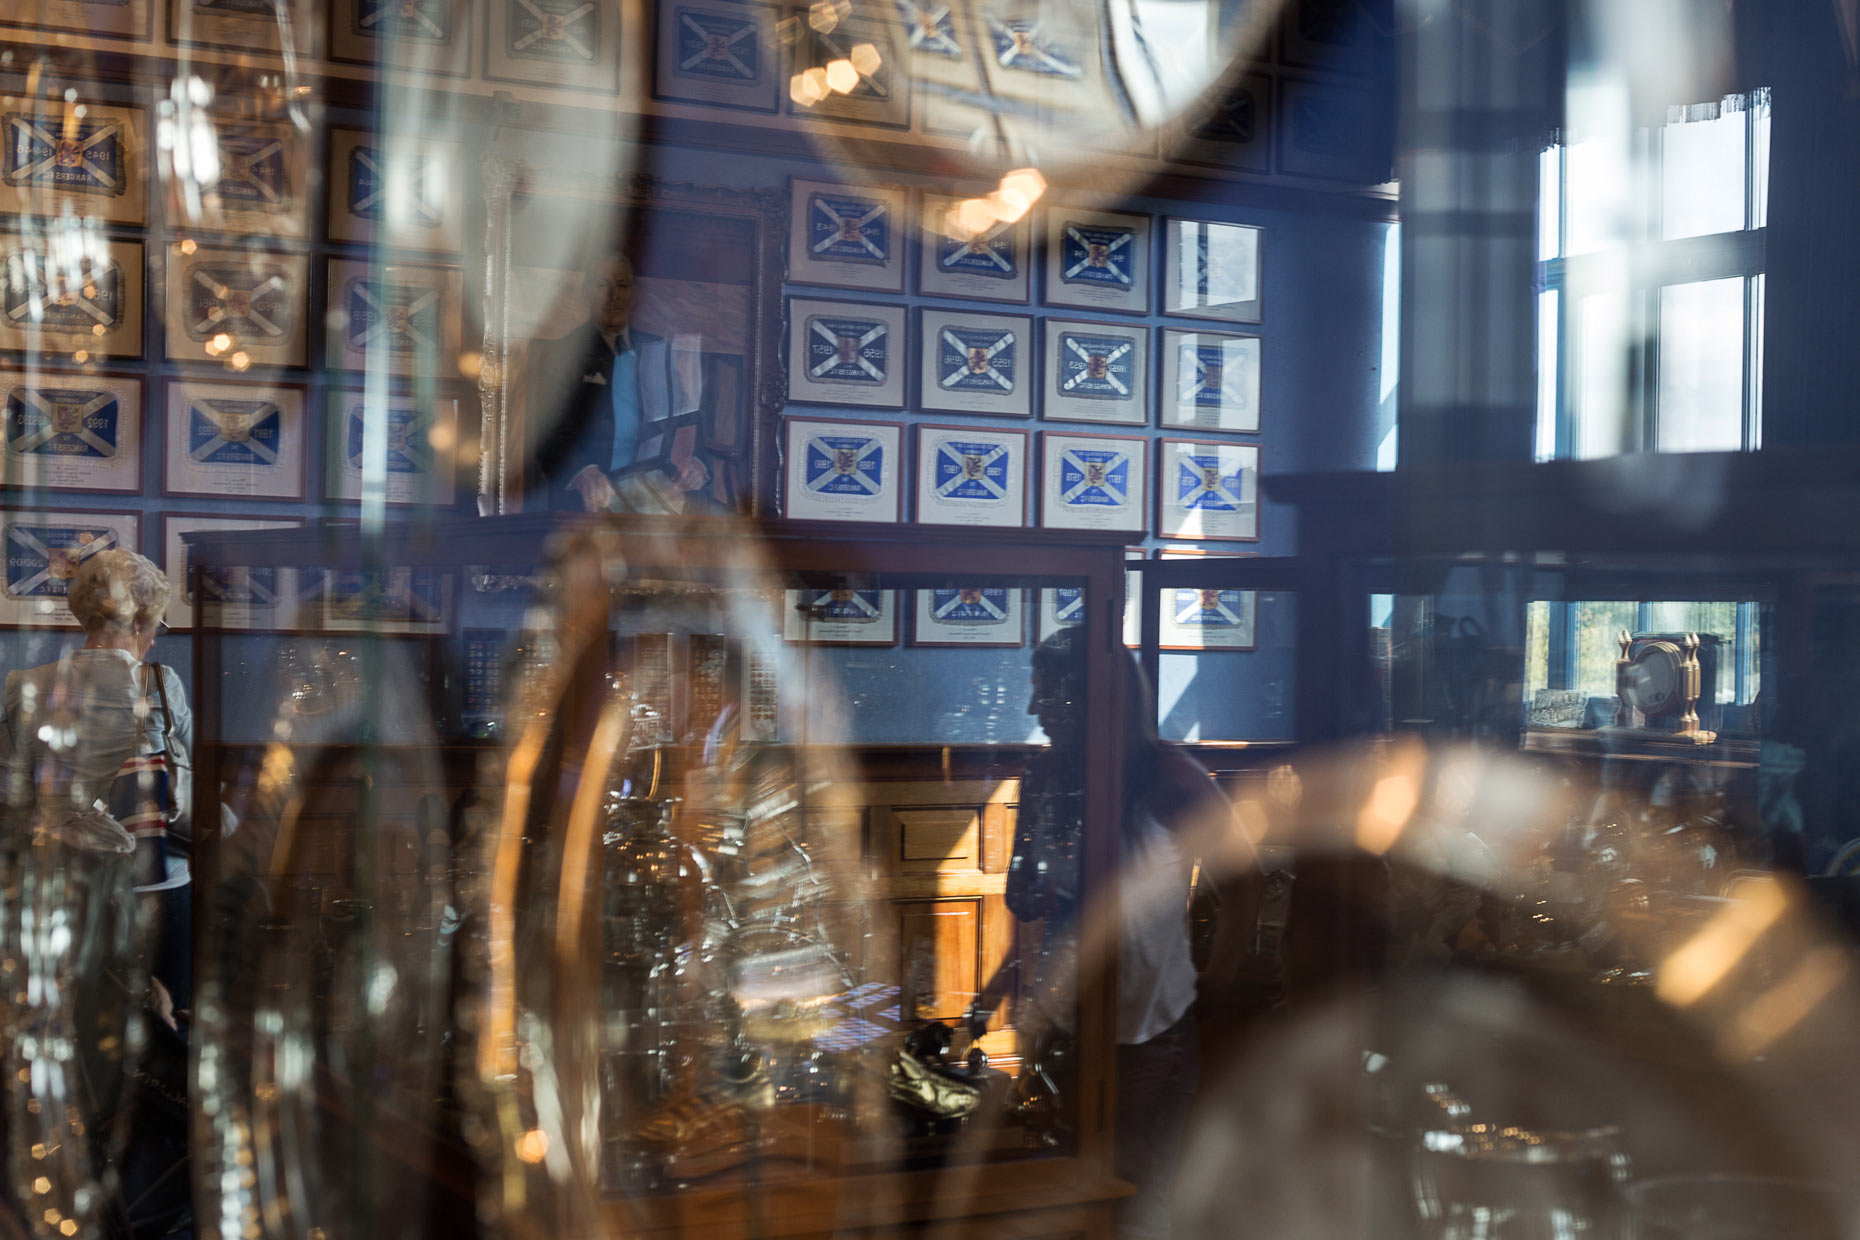 Rangers FC trophy room at Ibrox Stadium, Scotland, by photographer Sutton-Hibbert